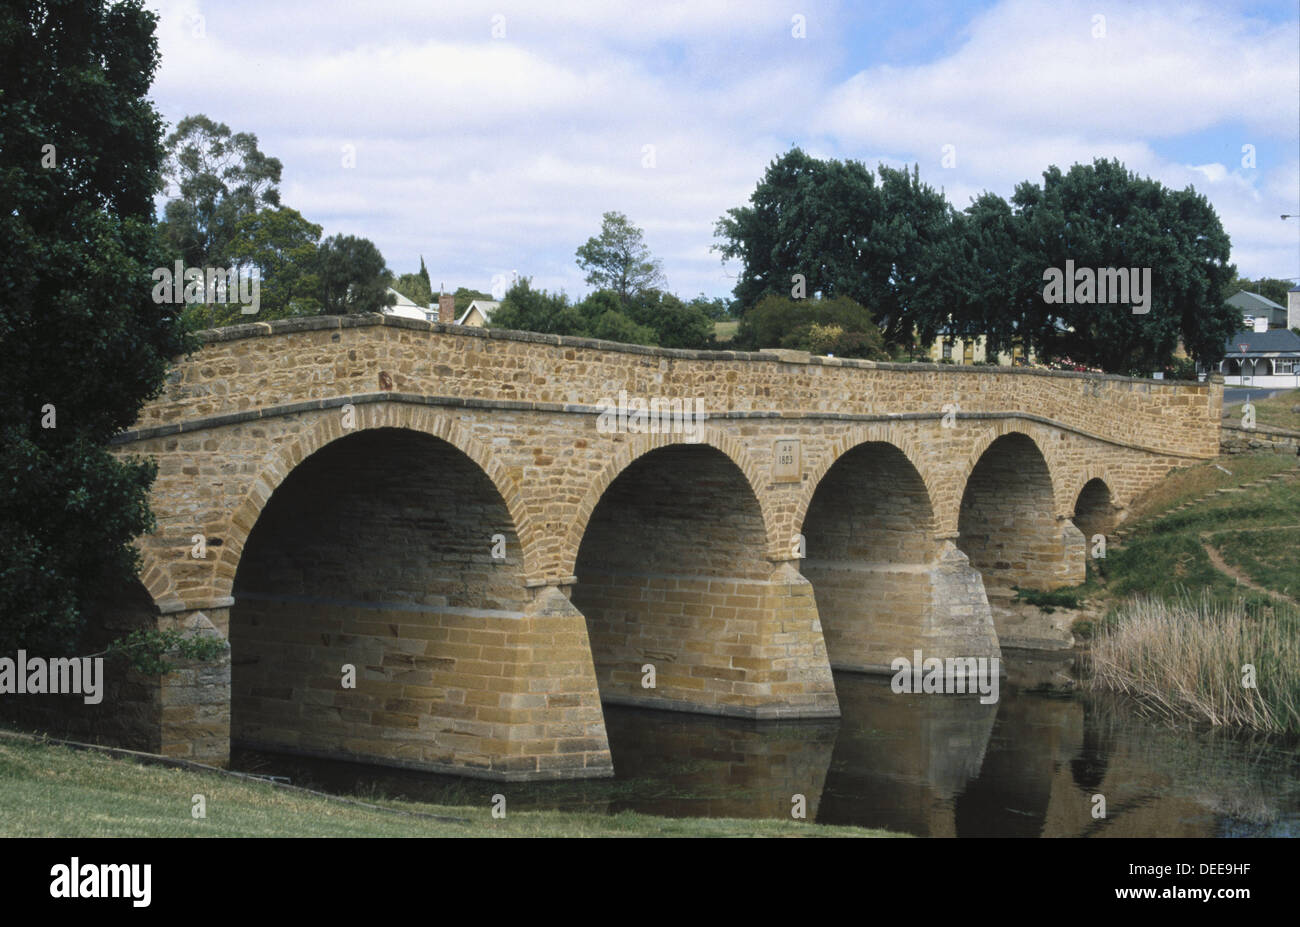 Oldest bridge in Australia, built 1823 by convicts, in Richmond,Tasmania, Australia. Stock Photo